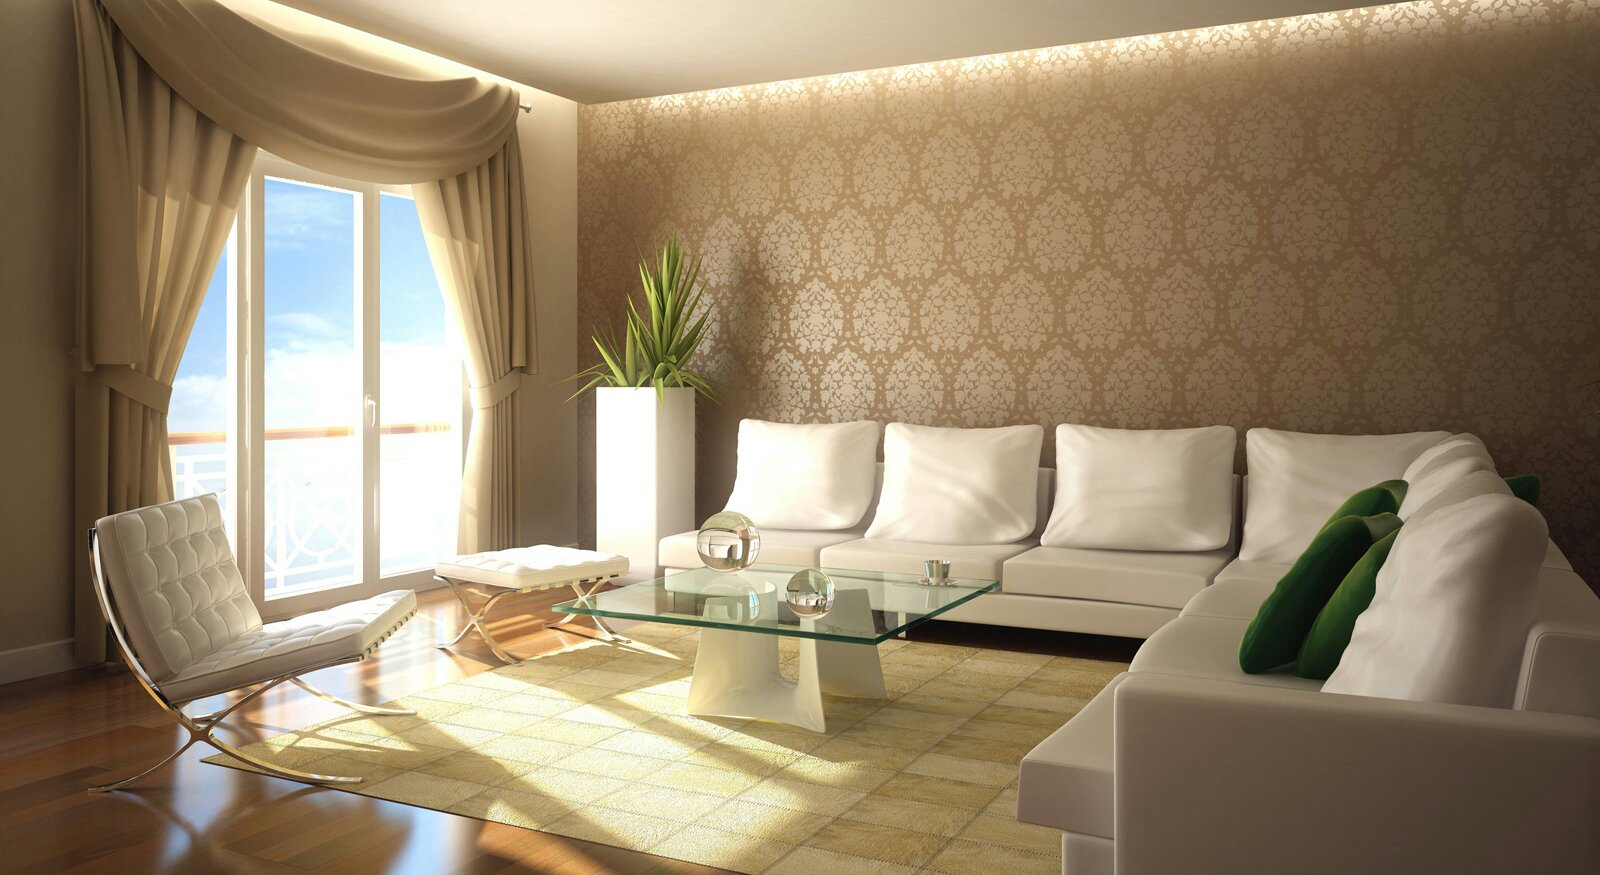 Decorative Paintings For Home Beauty Of Walls My Decorative